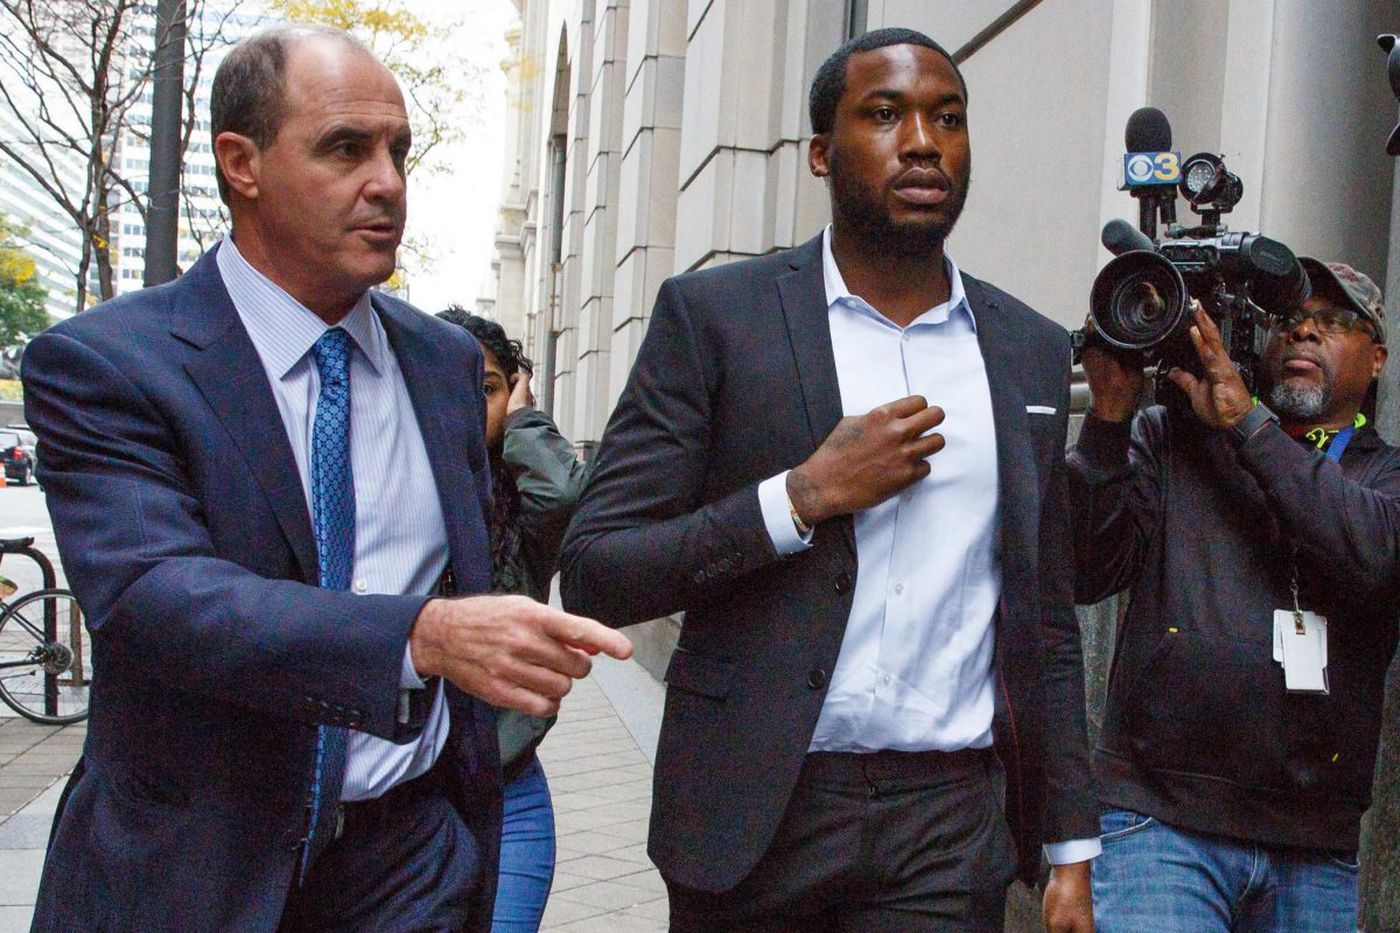 Meek Mill fans angered by prison sentence